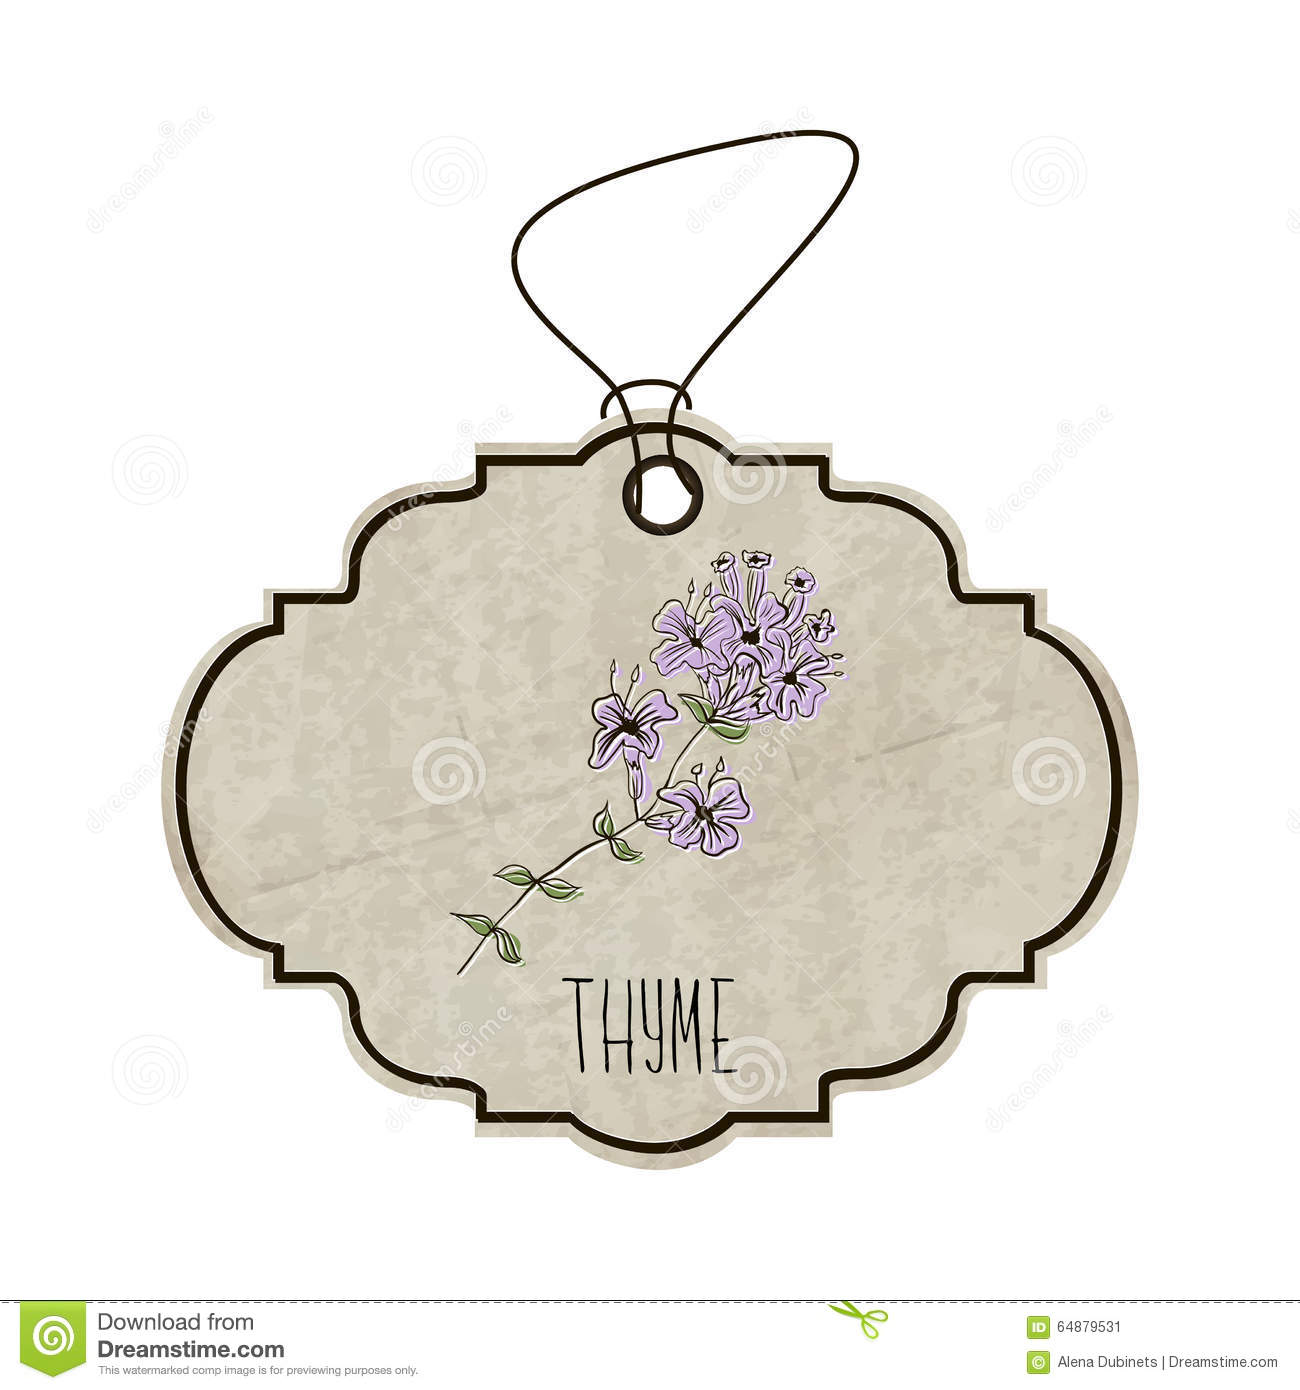 Handdrawn illustration from the collection of spices and herbs. The old label in retro style with colorful fragrant sprig of thyme